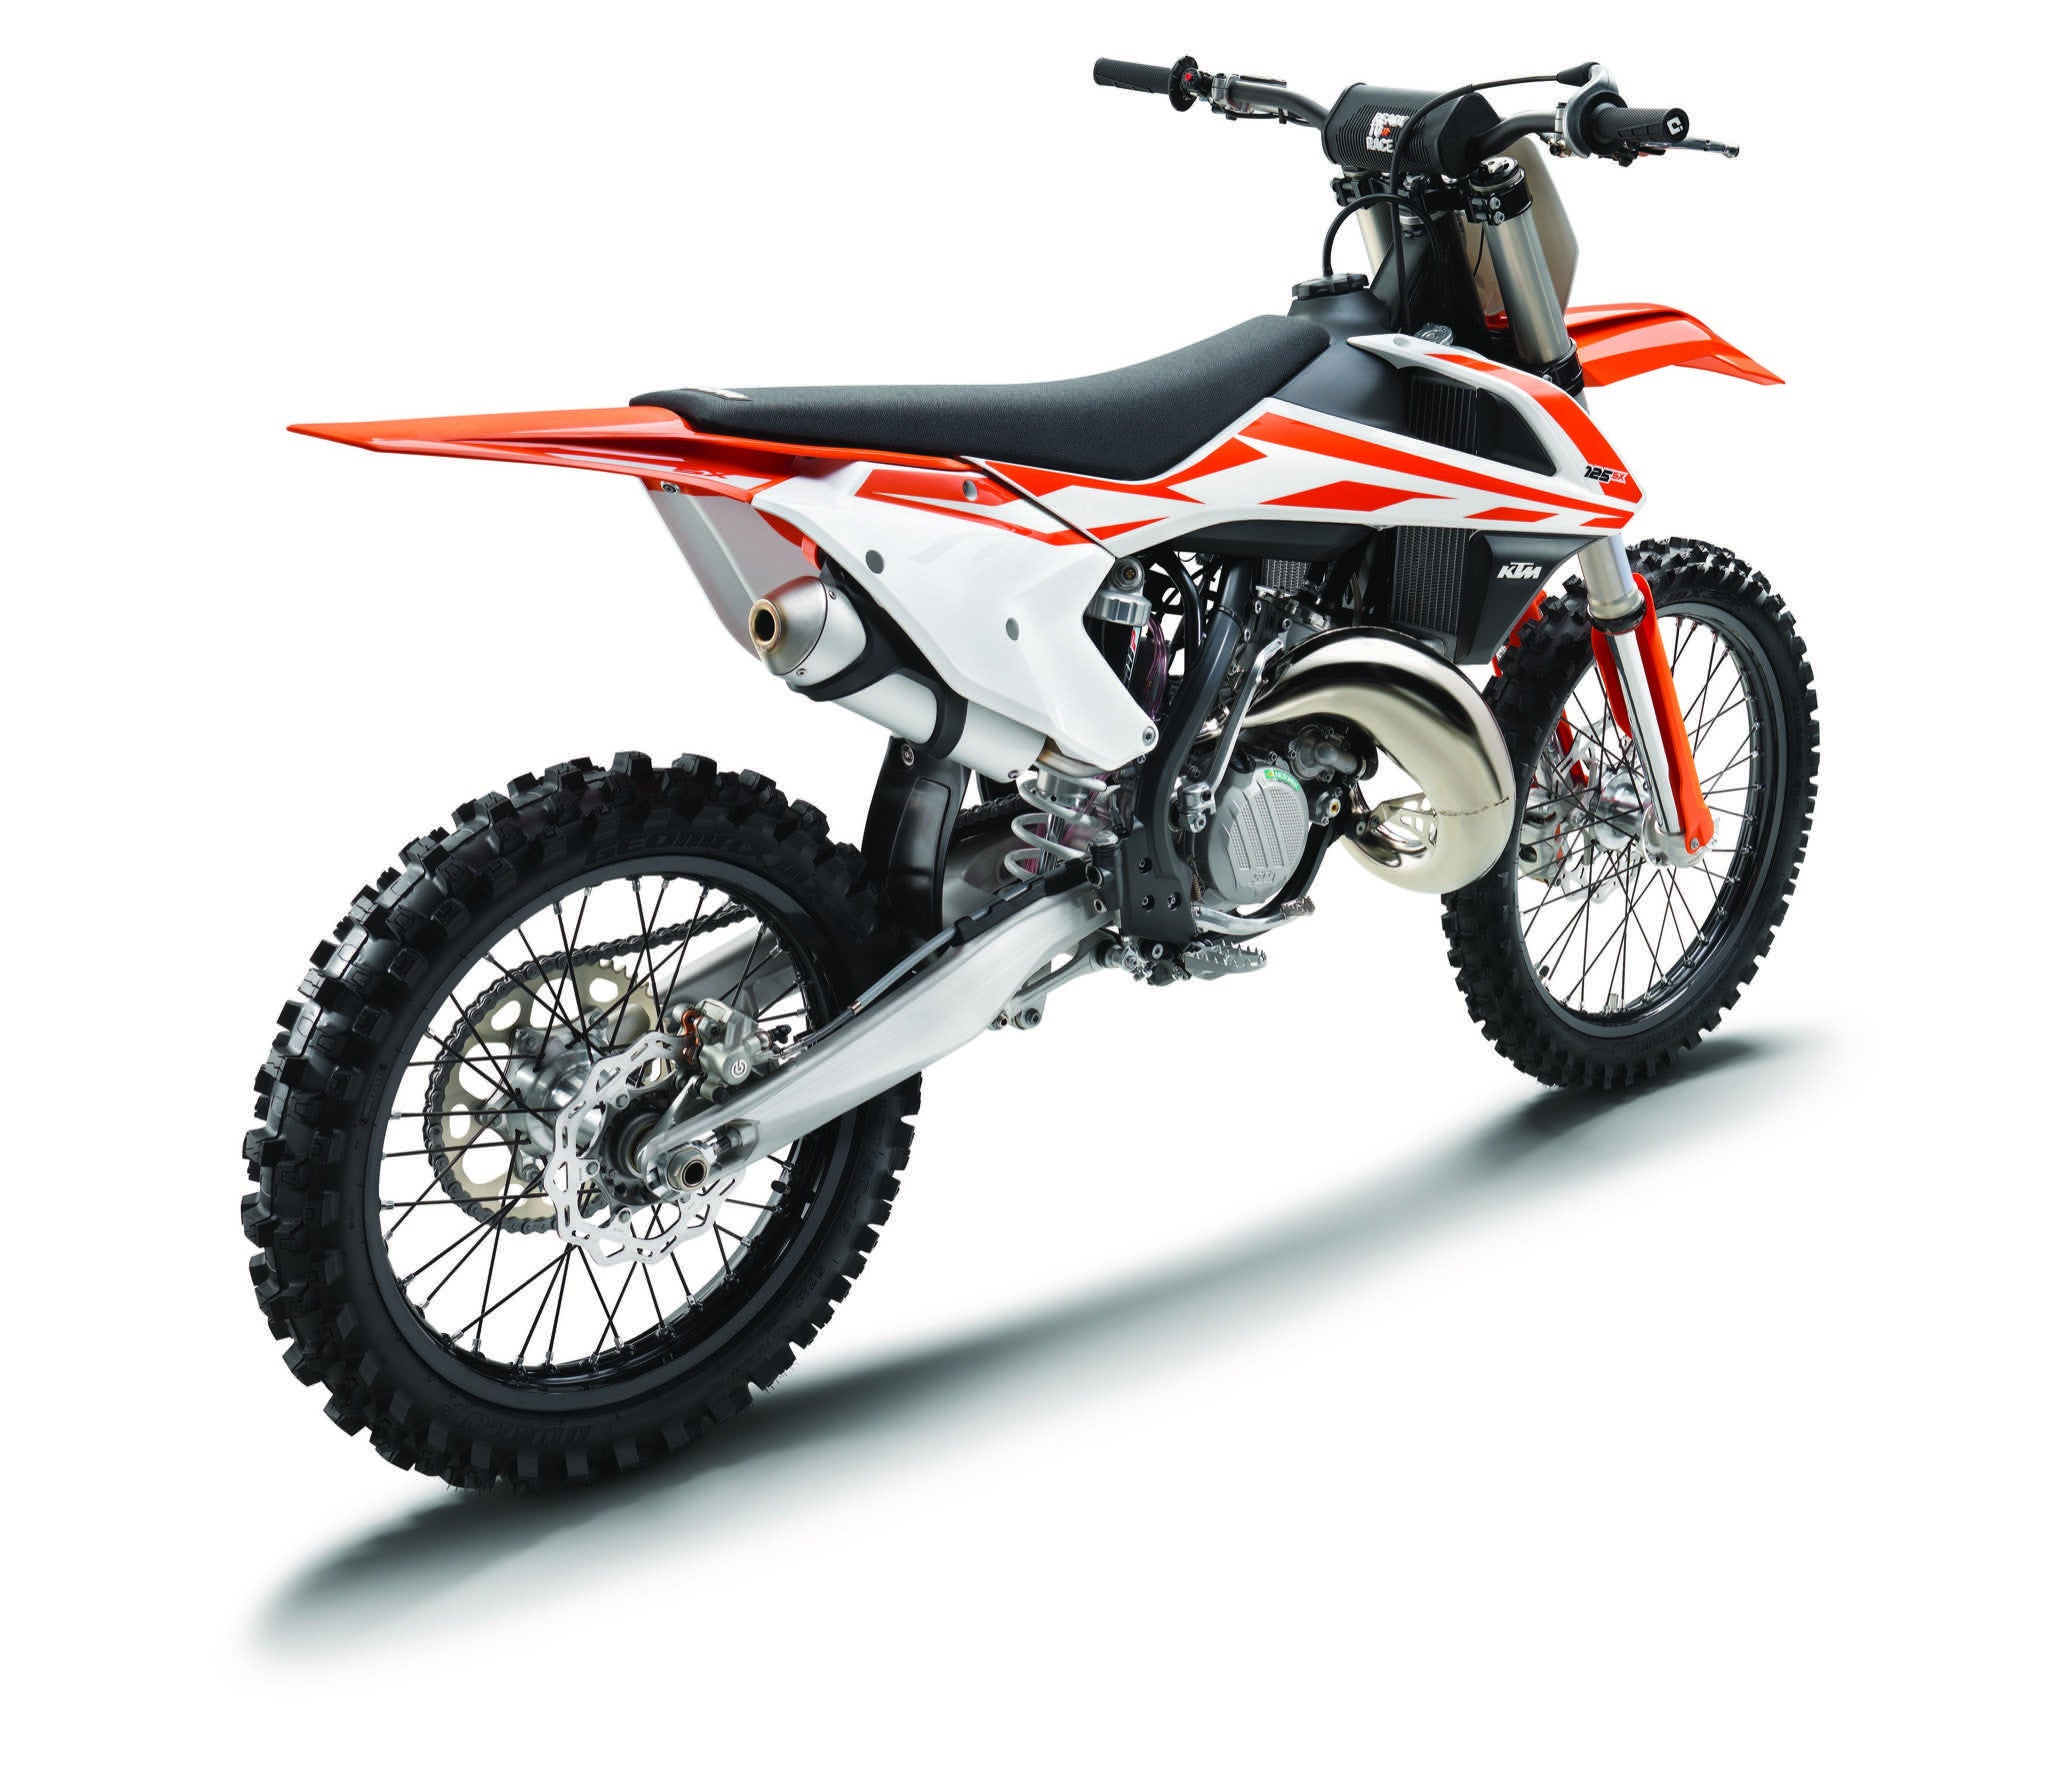 2017 ktm 125 sx motocross motorcycle for sale kissimmee central florida powersports. Black Bedroom Furniture Sets. Home Design Ideas